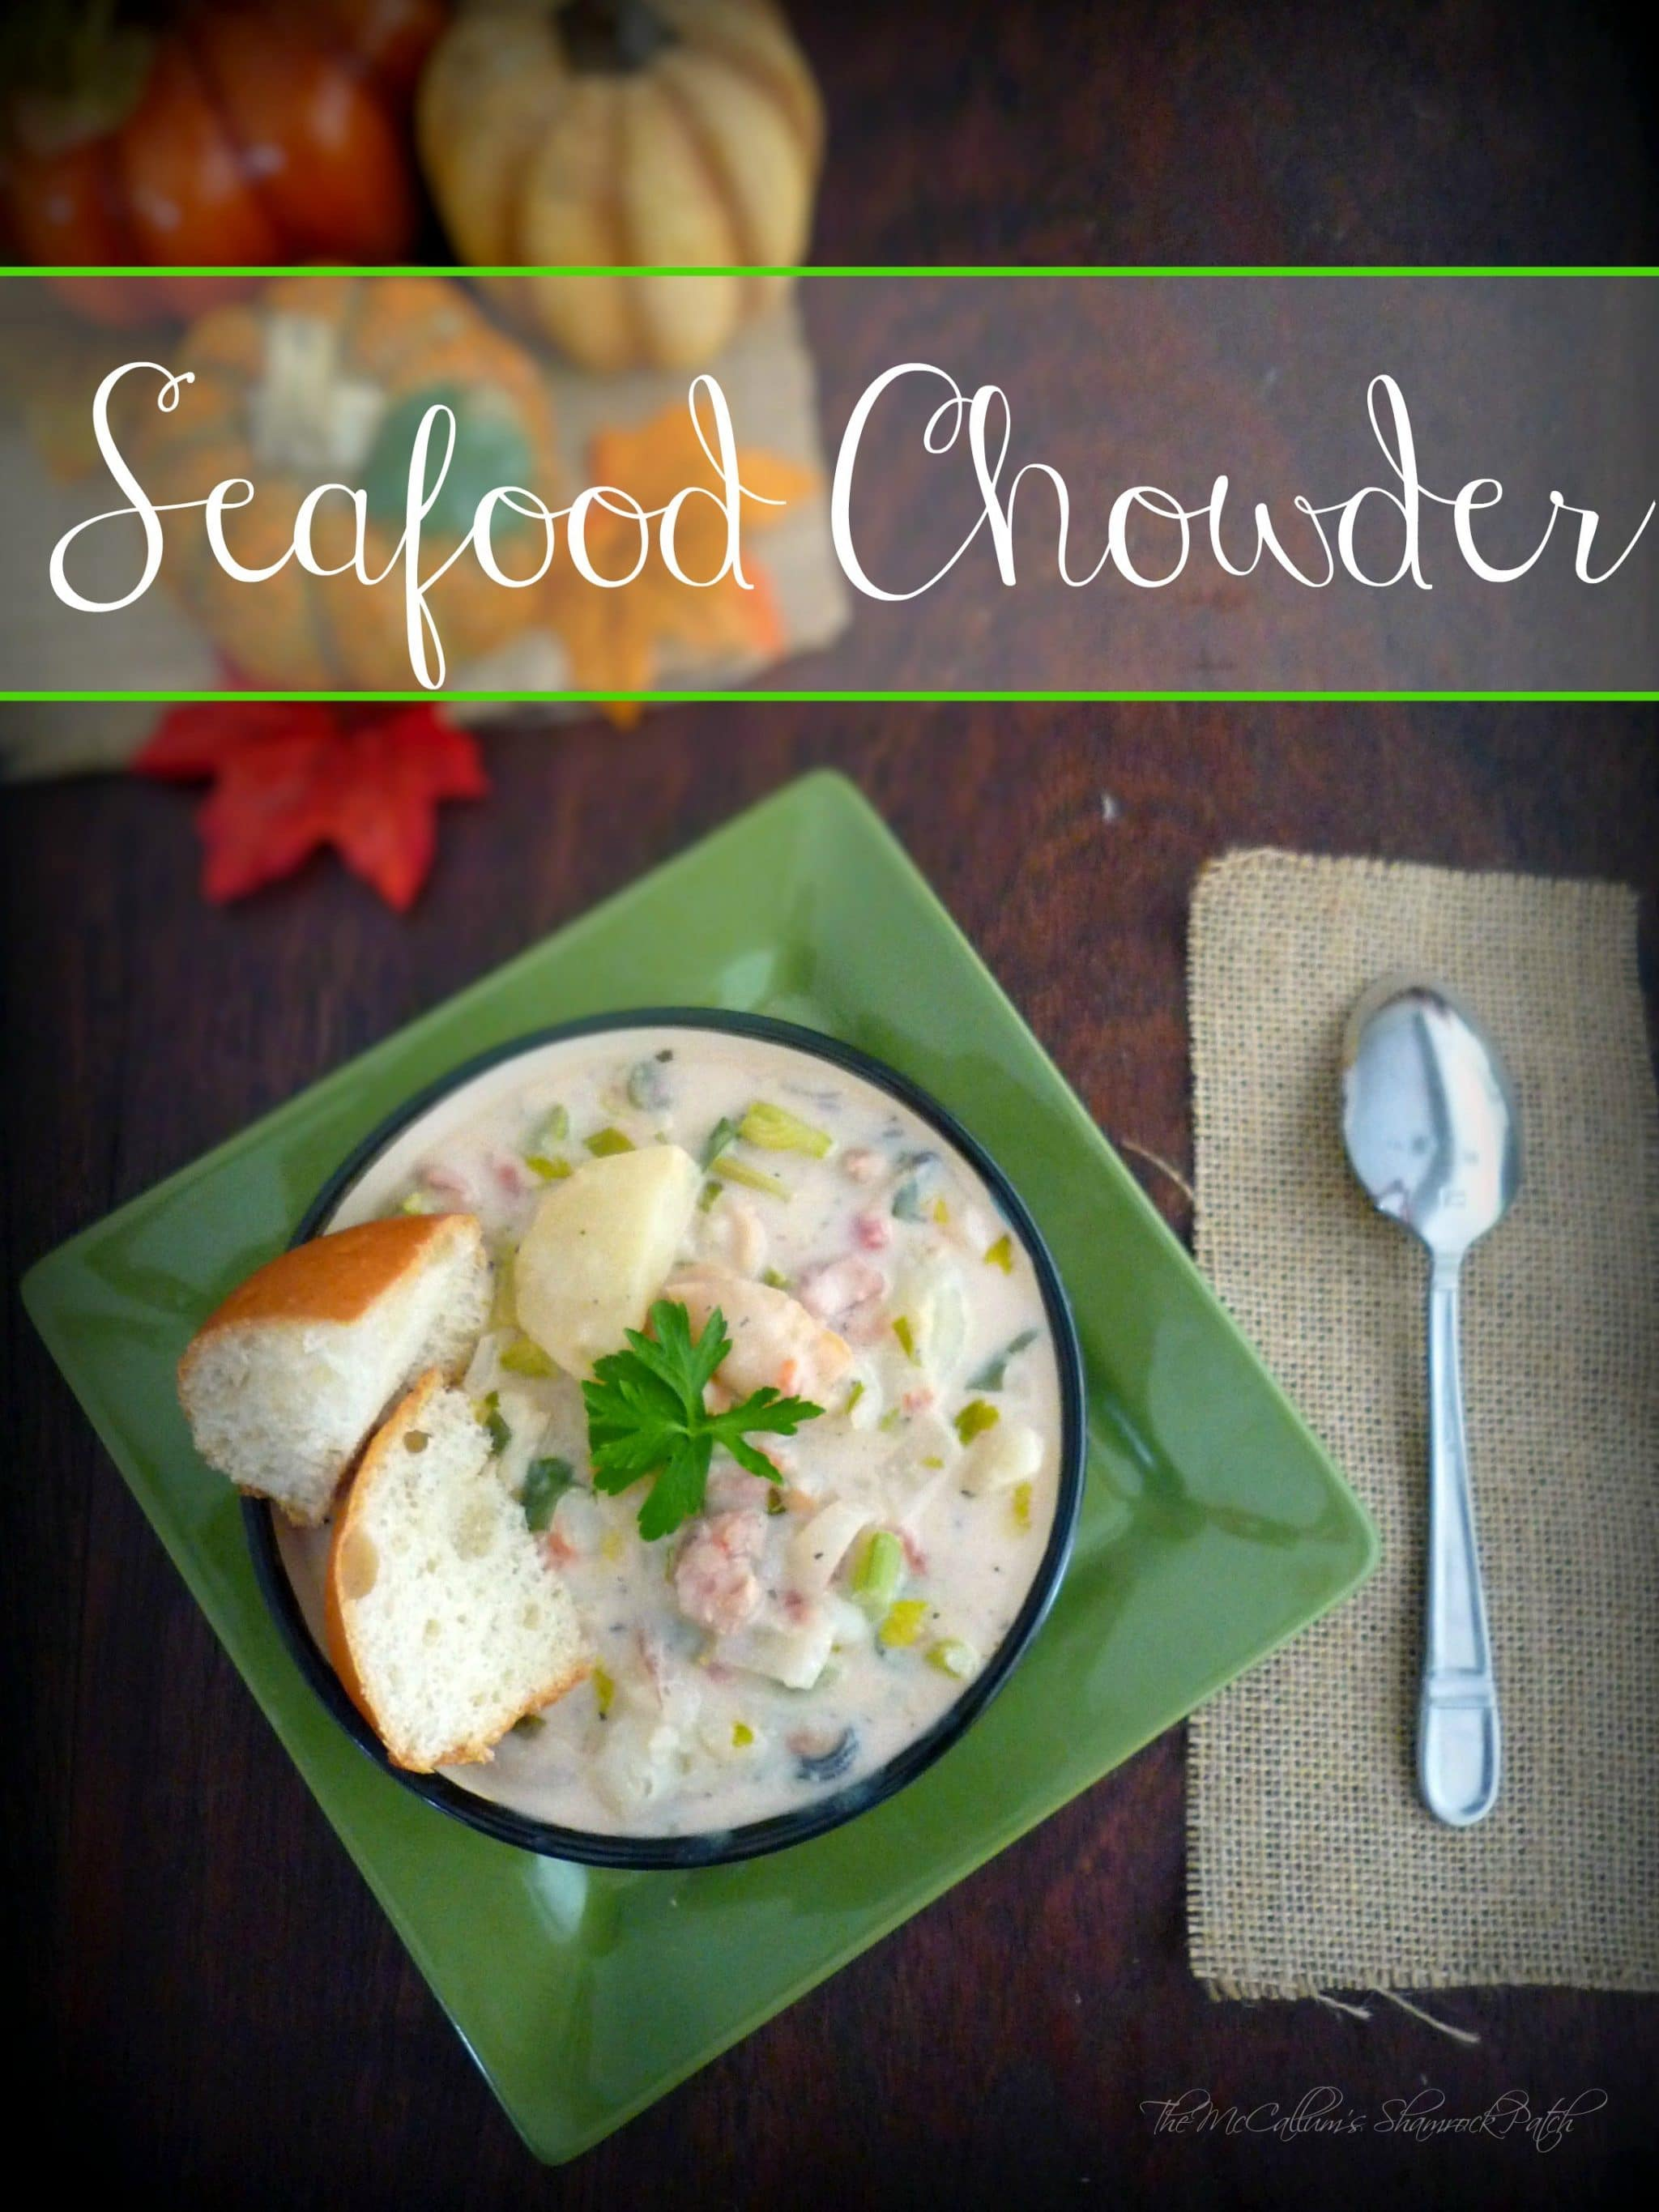 #seafoodchowder, #shrimp, #crab, #fish, #oysters, #clams